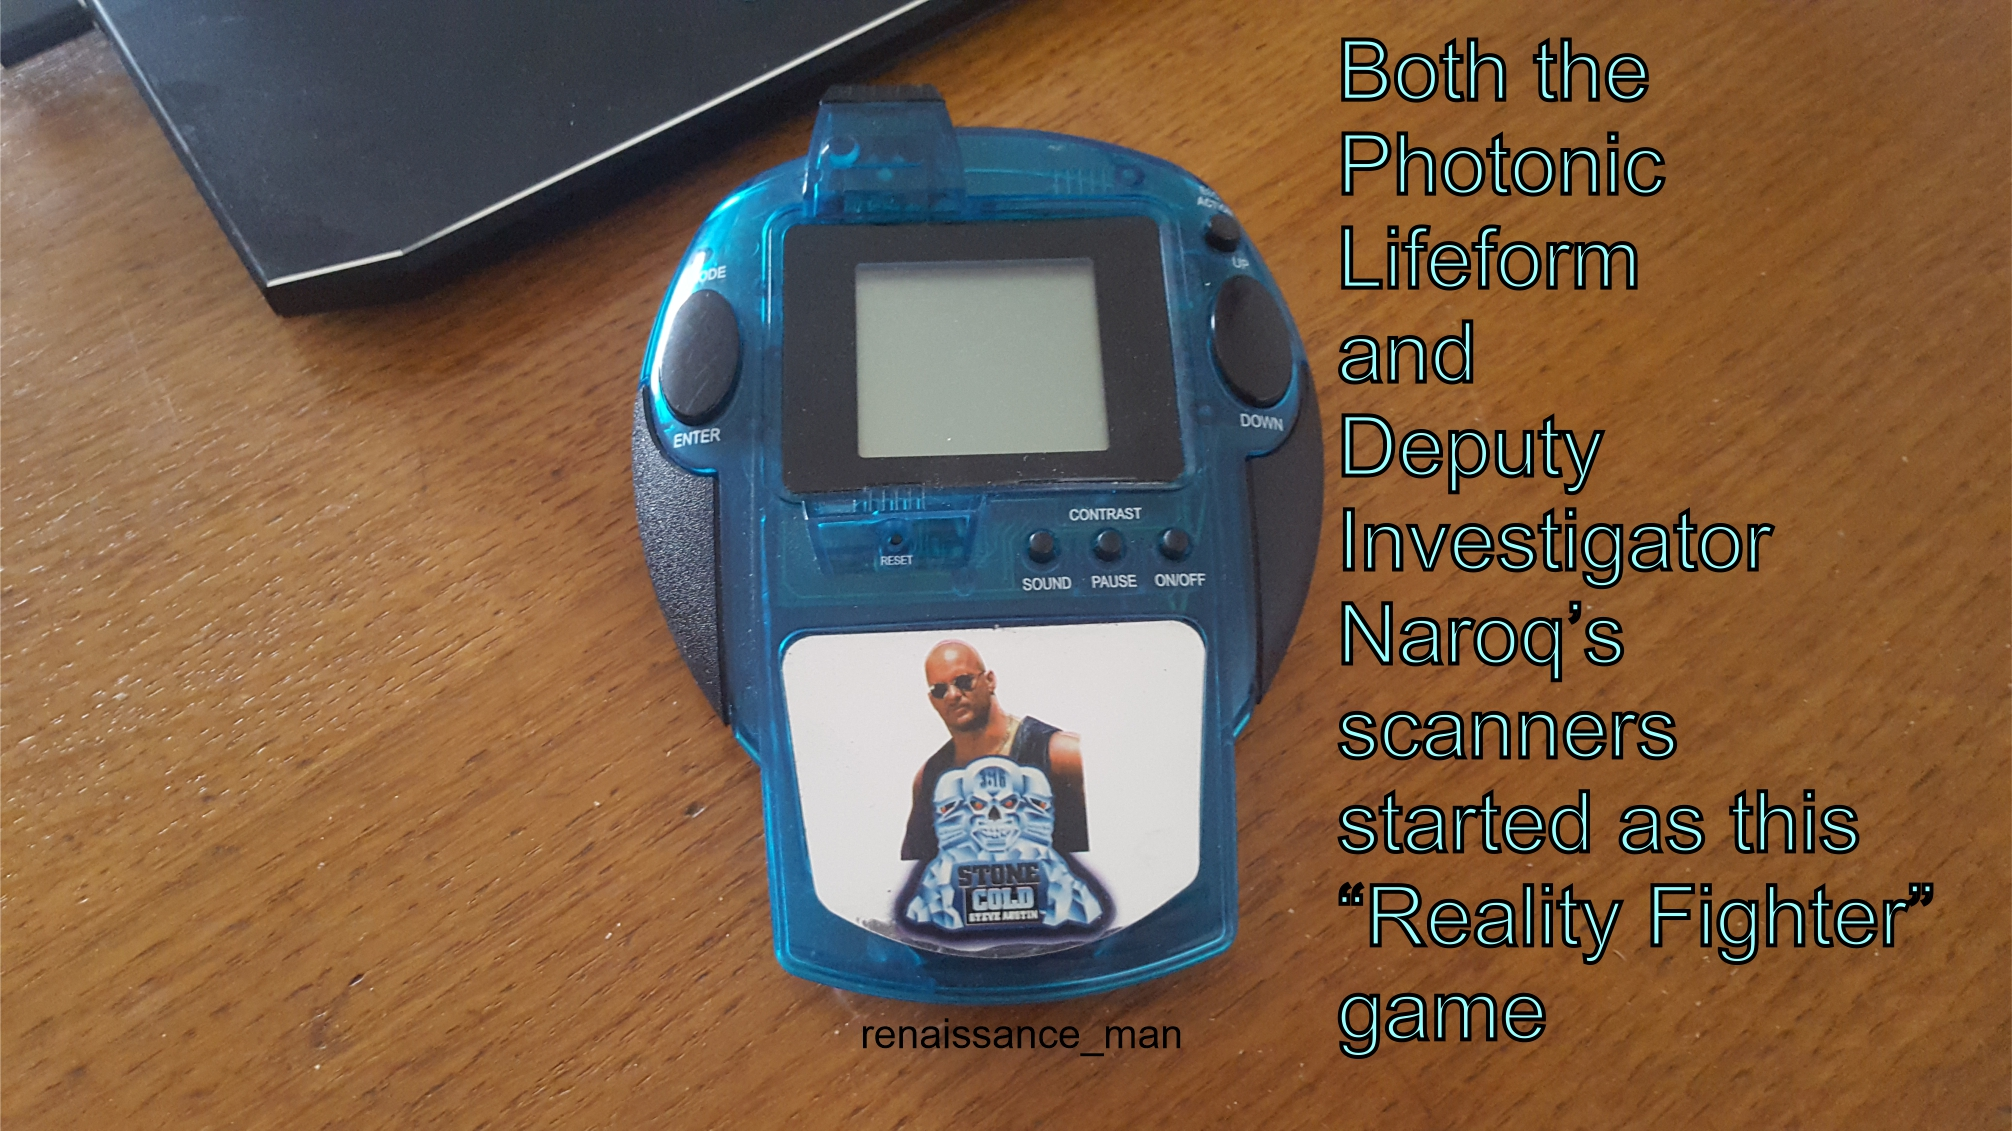 Reality-Fighter-LCD-game-prop-base.jpg